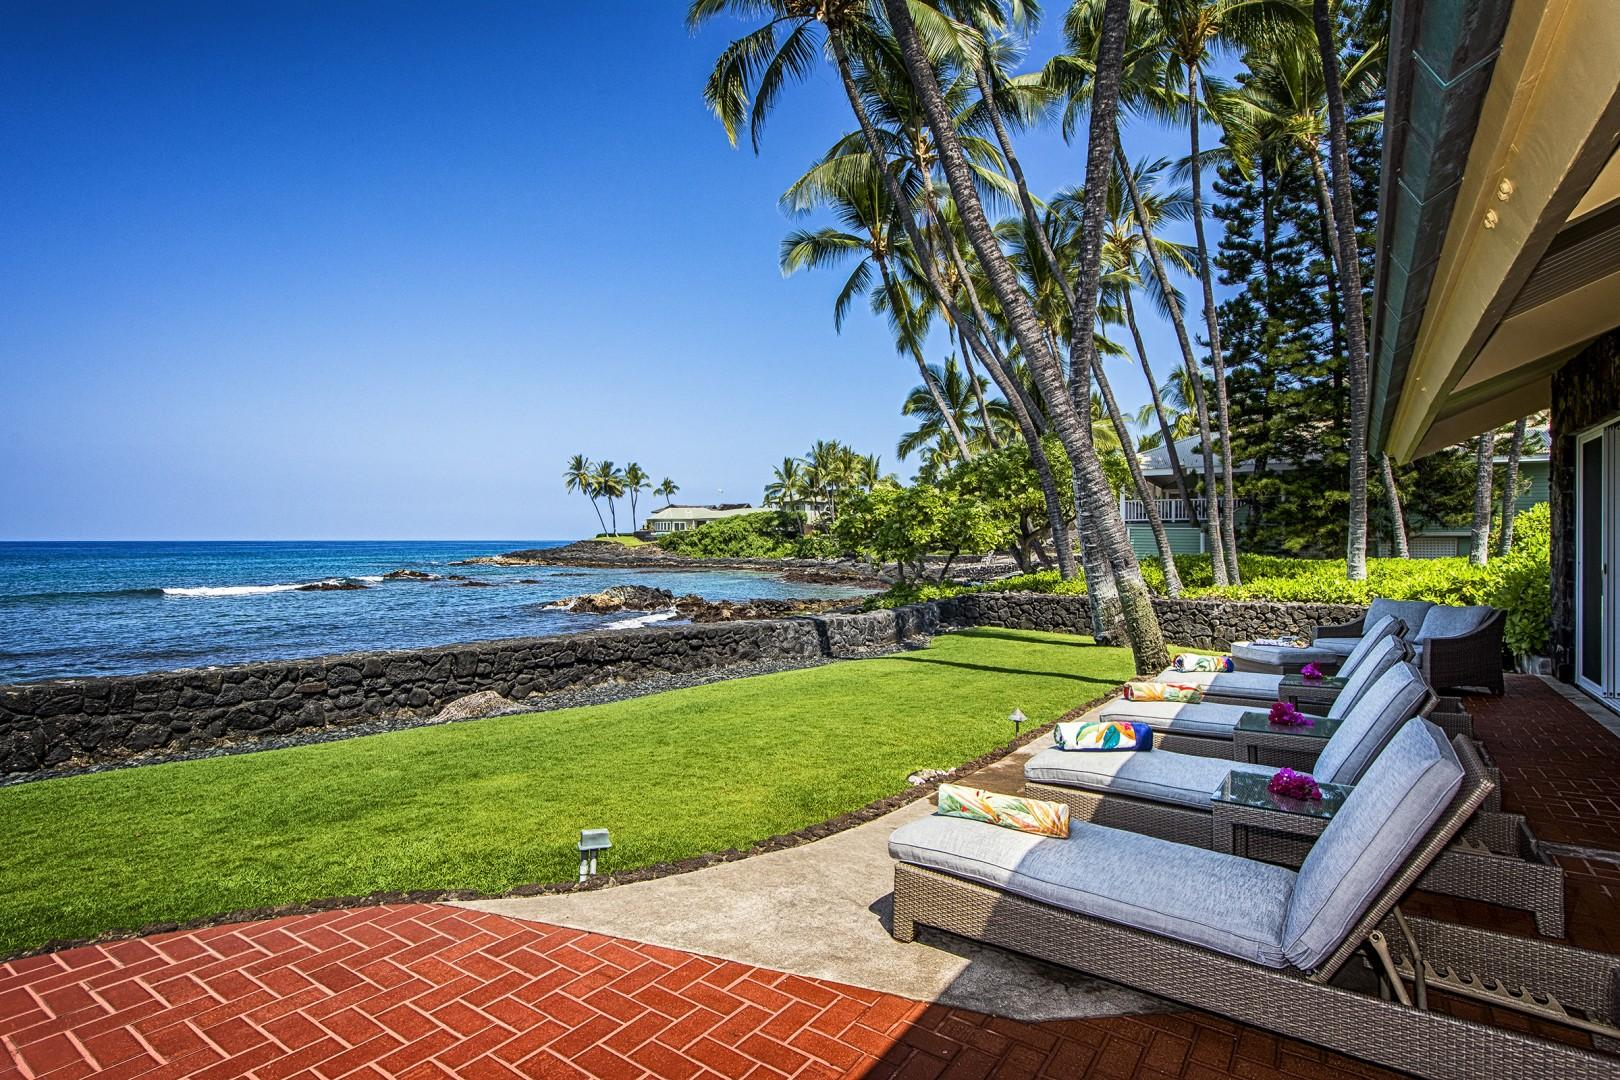 4 outdoor loungers to enjoy the Kona sun